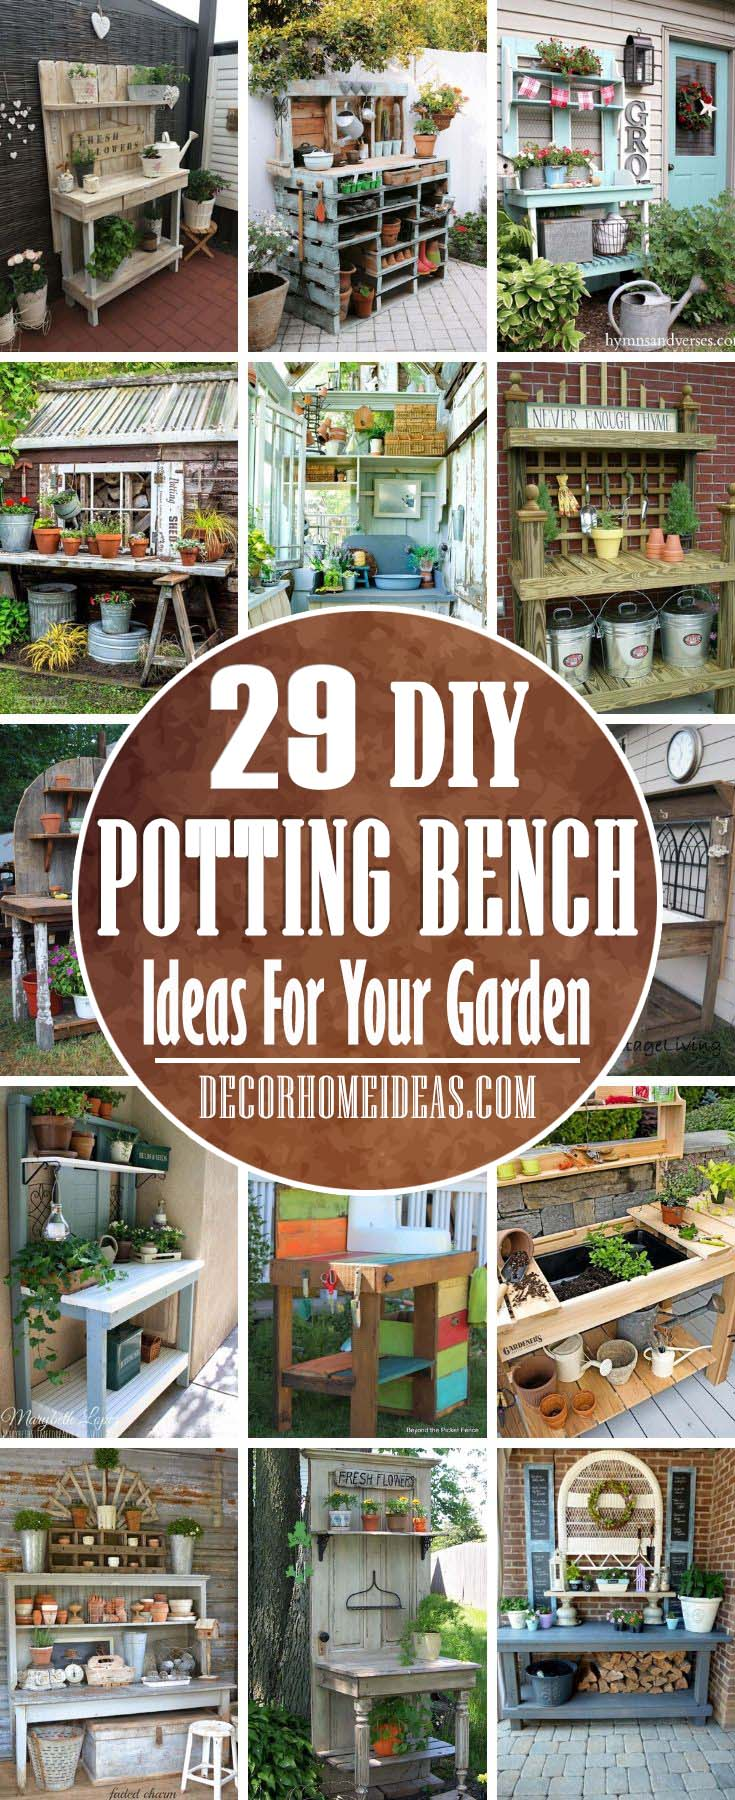 Best Potting Bench Ideas. There are number of advantages of having your own potting bench - no more tired arms, legs and back and potting activity will be much more organized. #pottingbench #garden #decorhomeideas